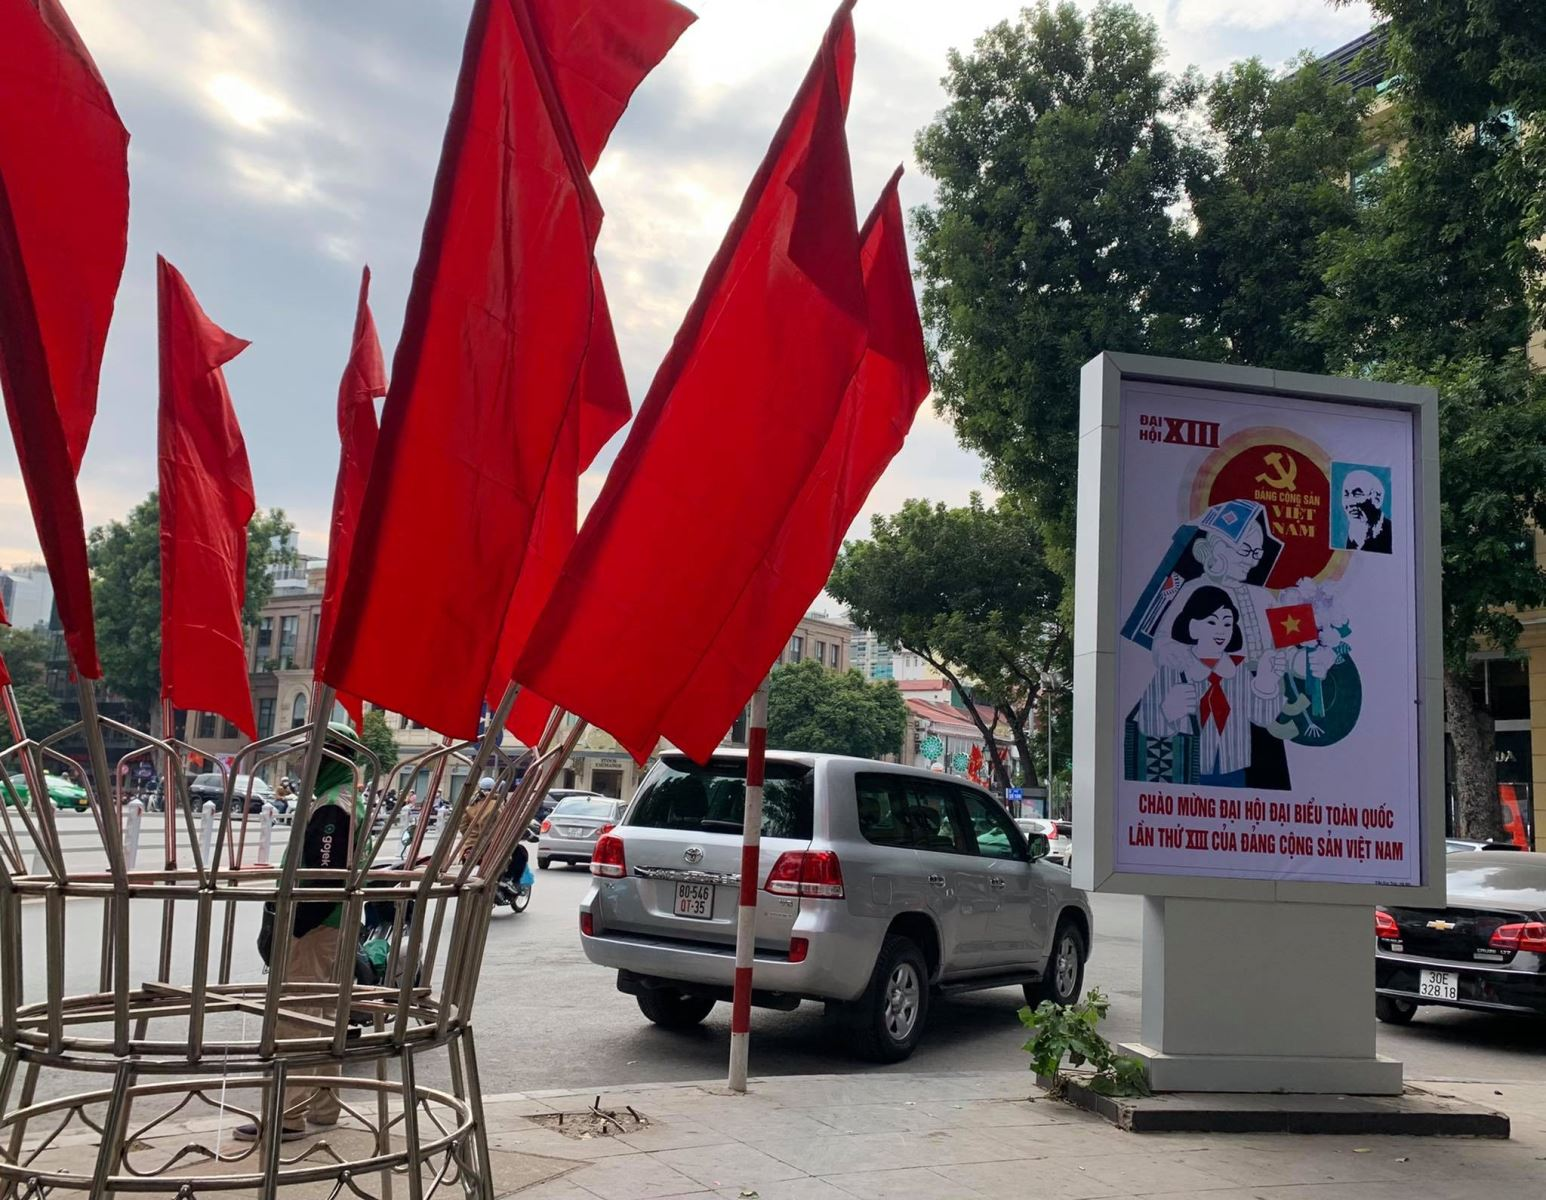 hanoi streets brilliantly decorated to welcome 13th national party congress